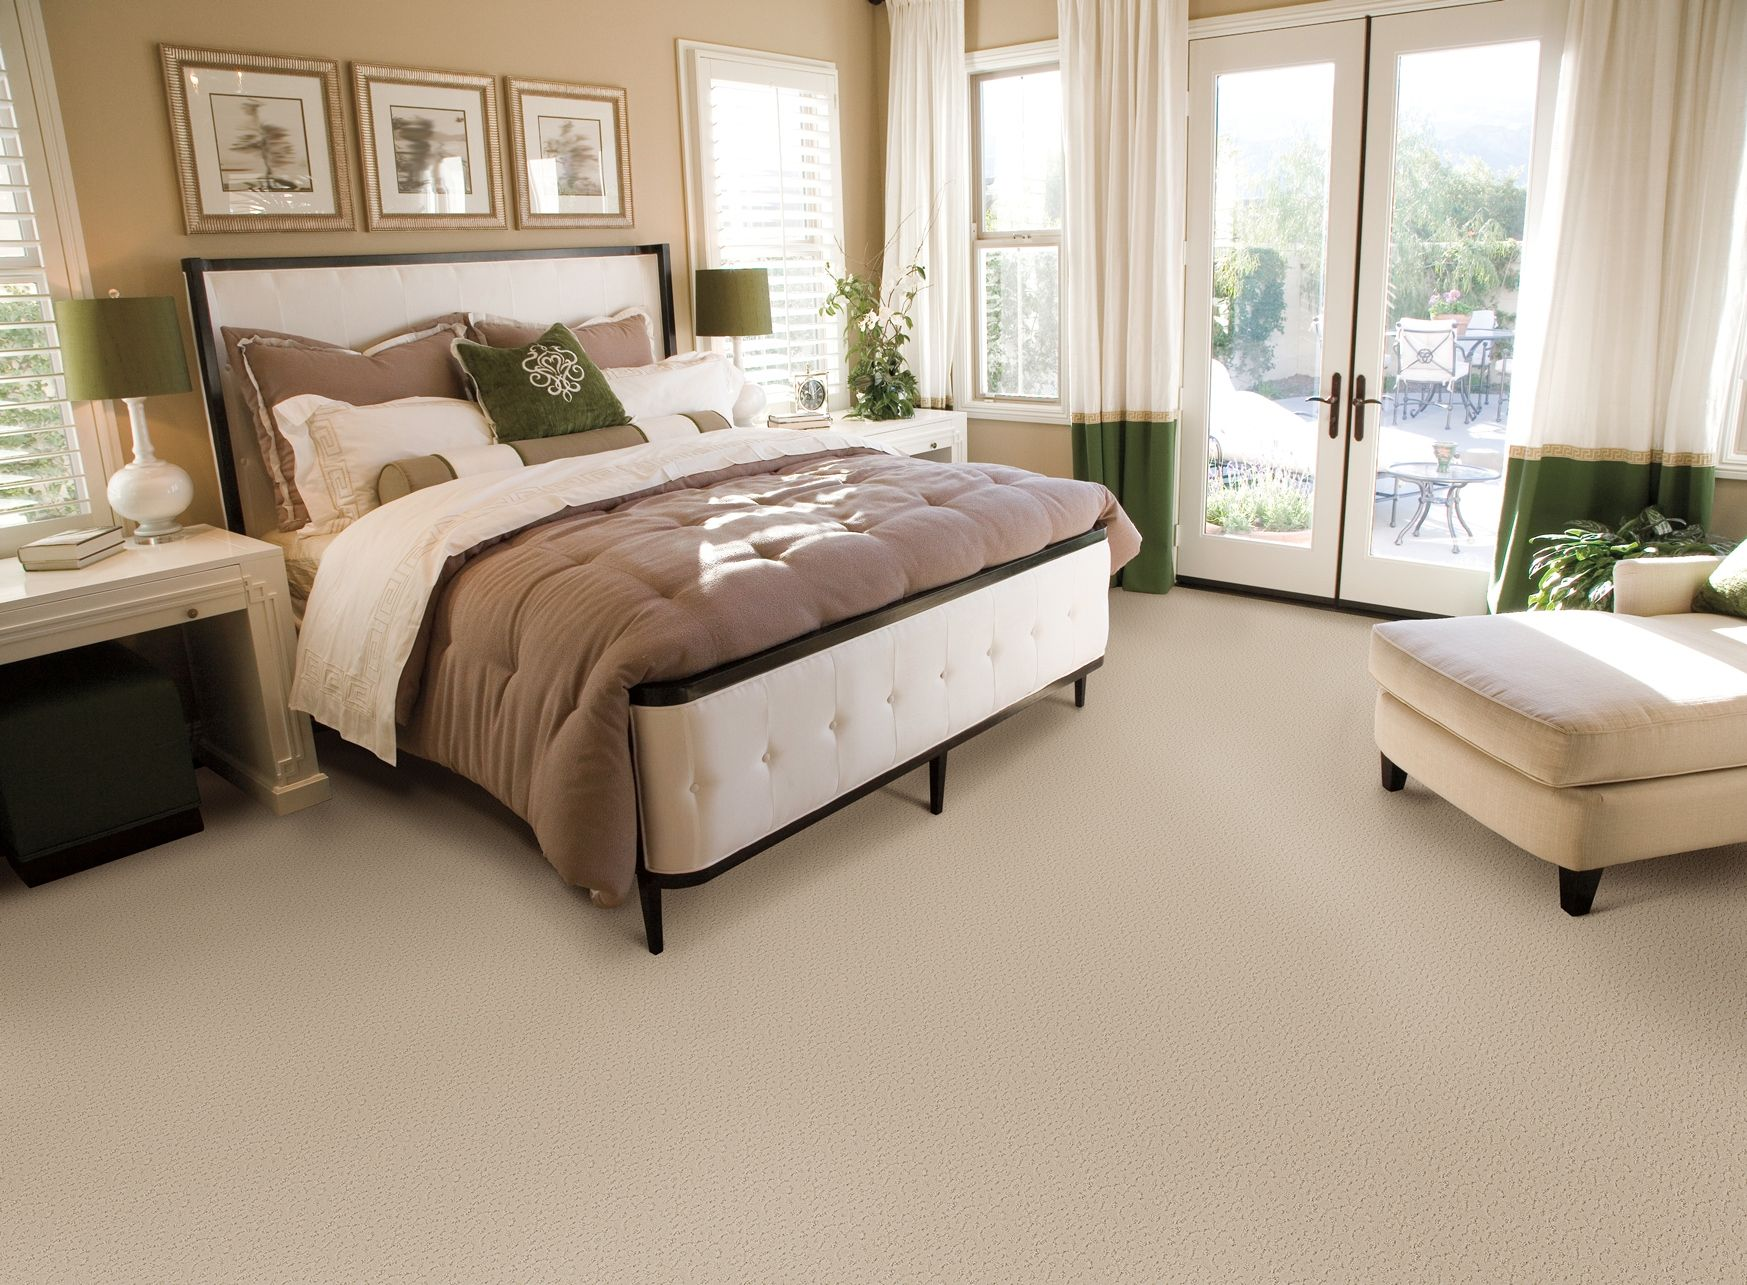 A Neutral Palette With Green Accents Make This Bedroom